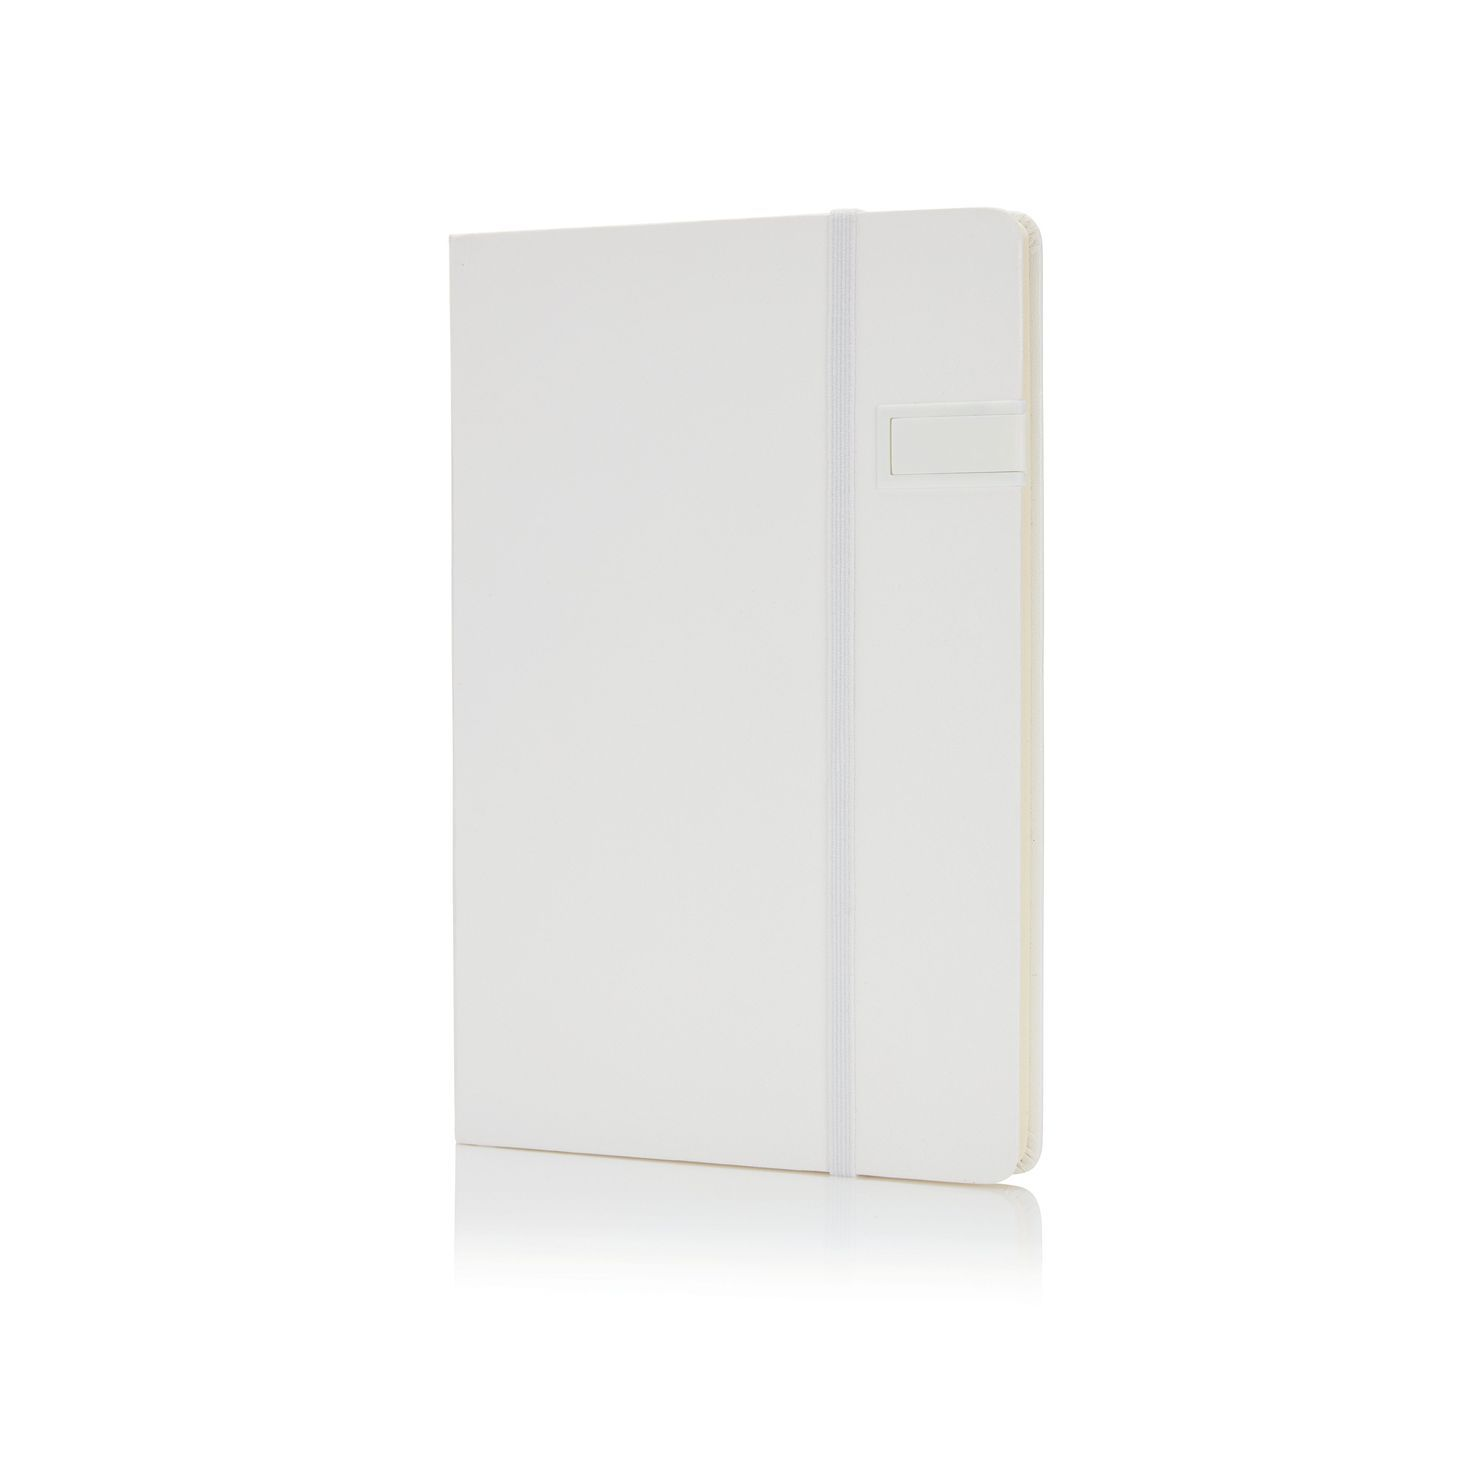 Witte Notitieboek A5 | USB 4GB